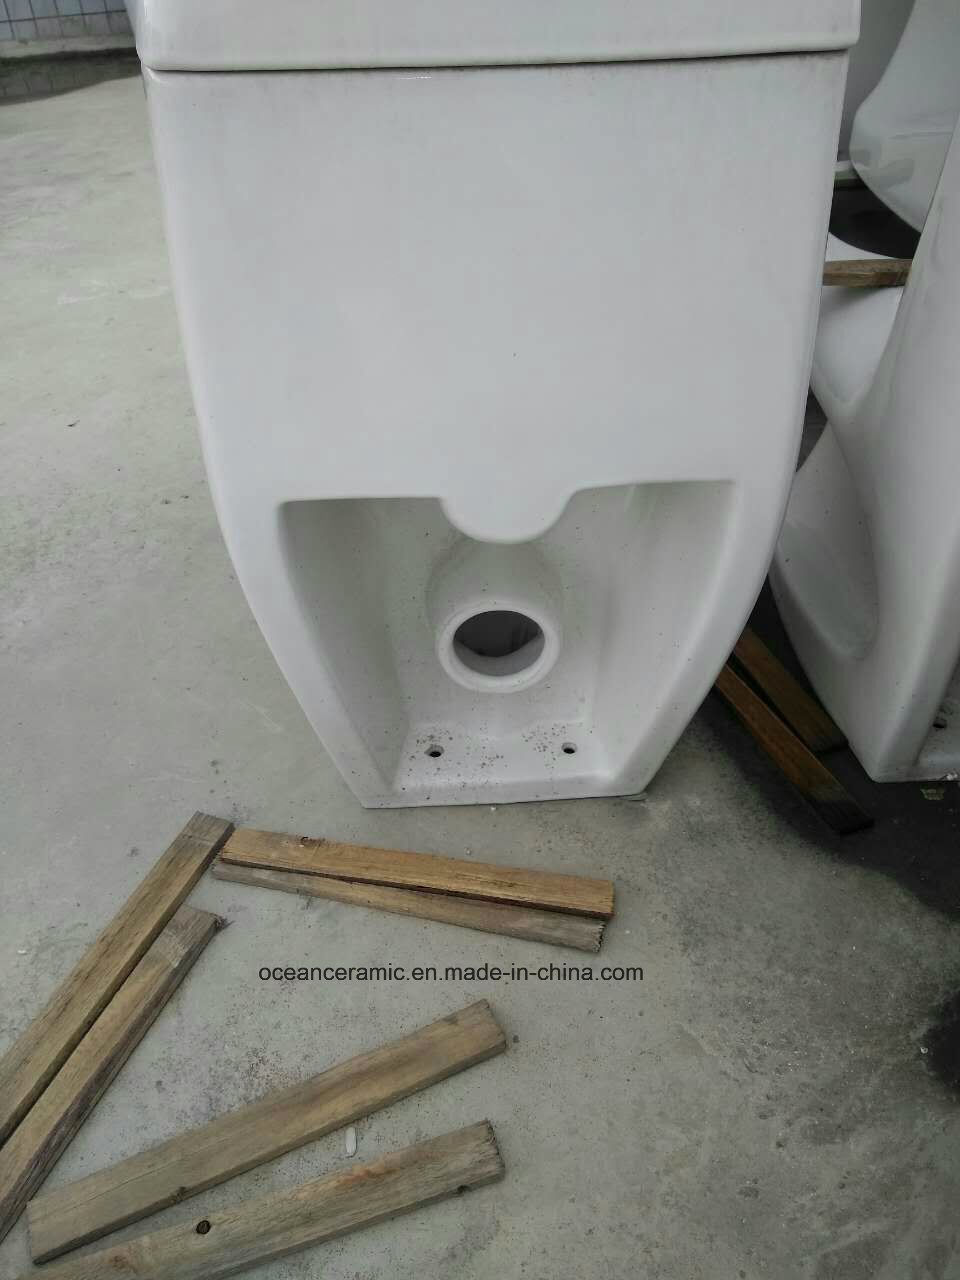 350 White Washdown P Trap 180mm One-Piece Toilet with Cheap Price and Good Quality pictures & photos